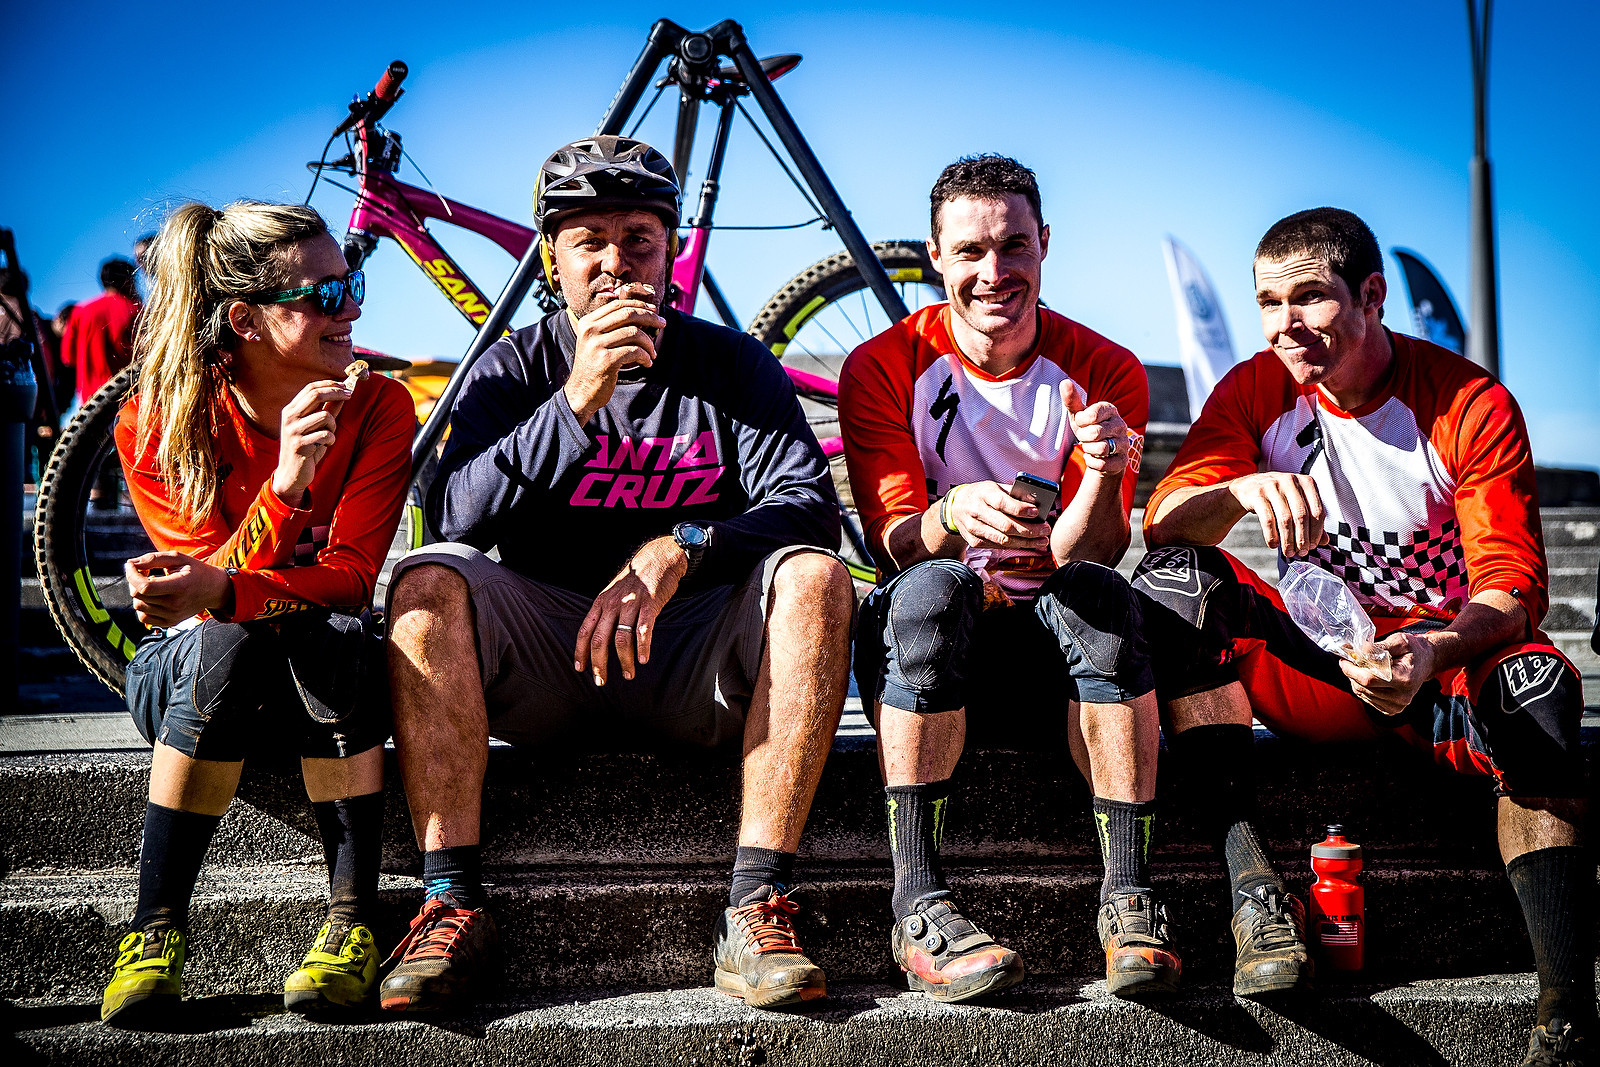 Catching up - PIT BITS - Enduro World Series, Corral, Chile - Mountain Biking Pictures - Vital MTB